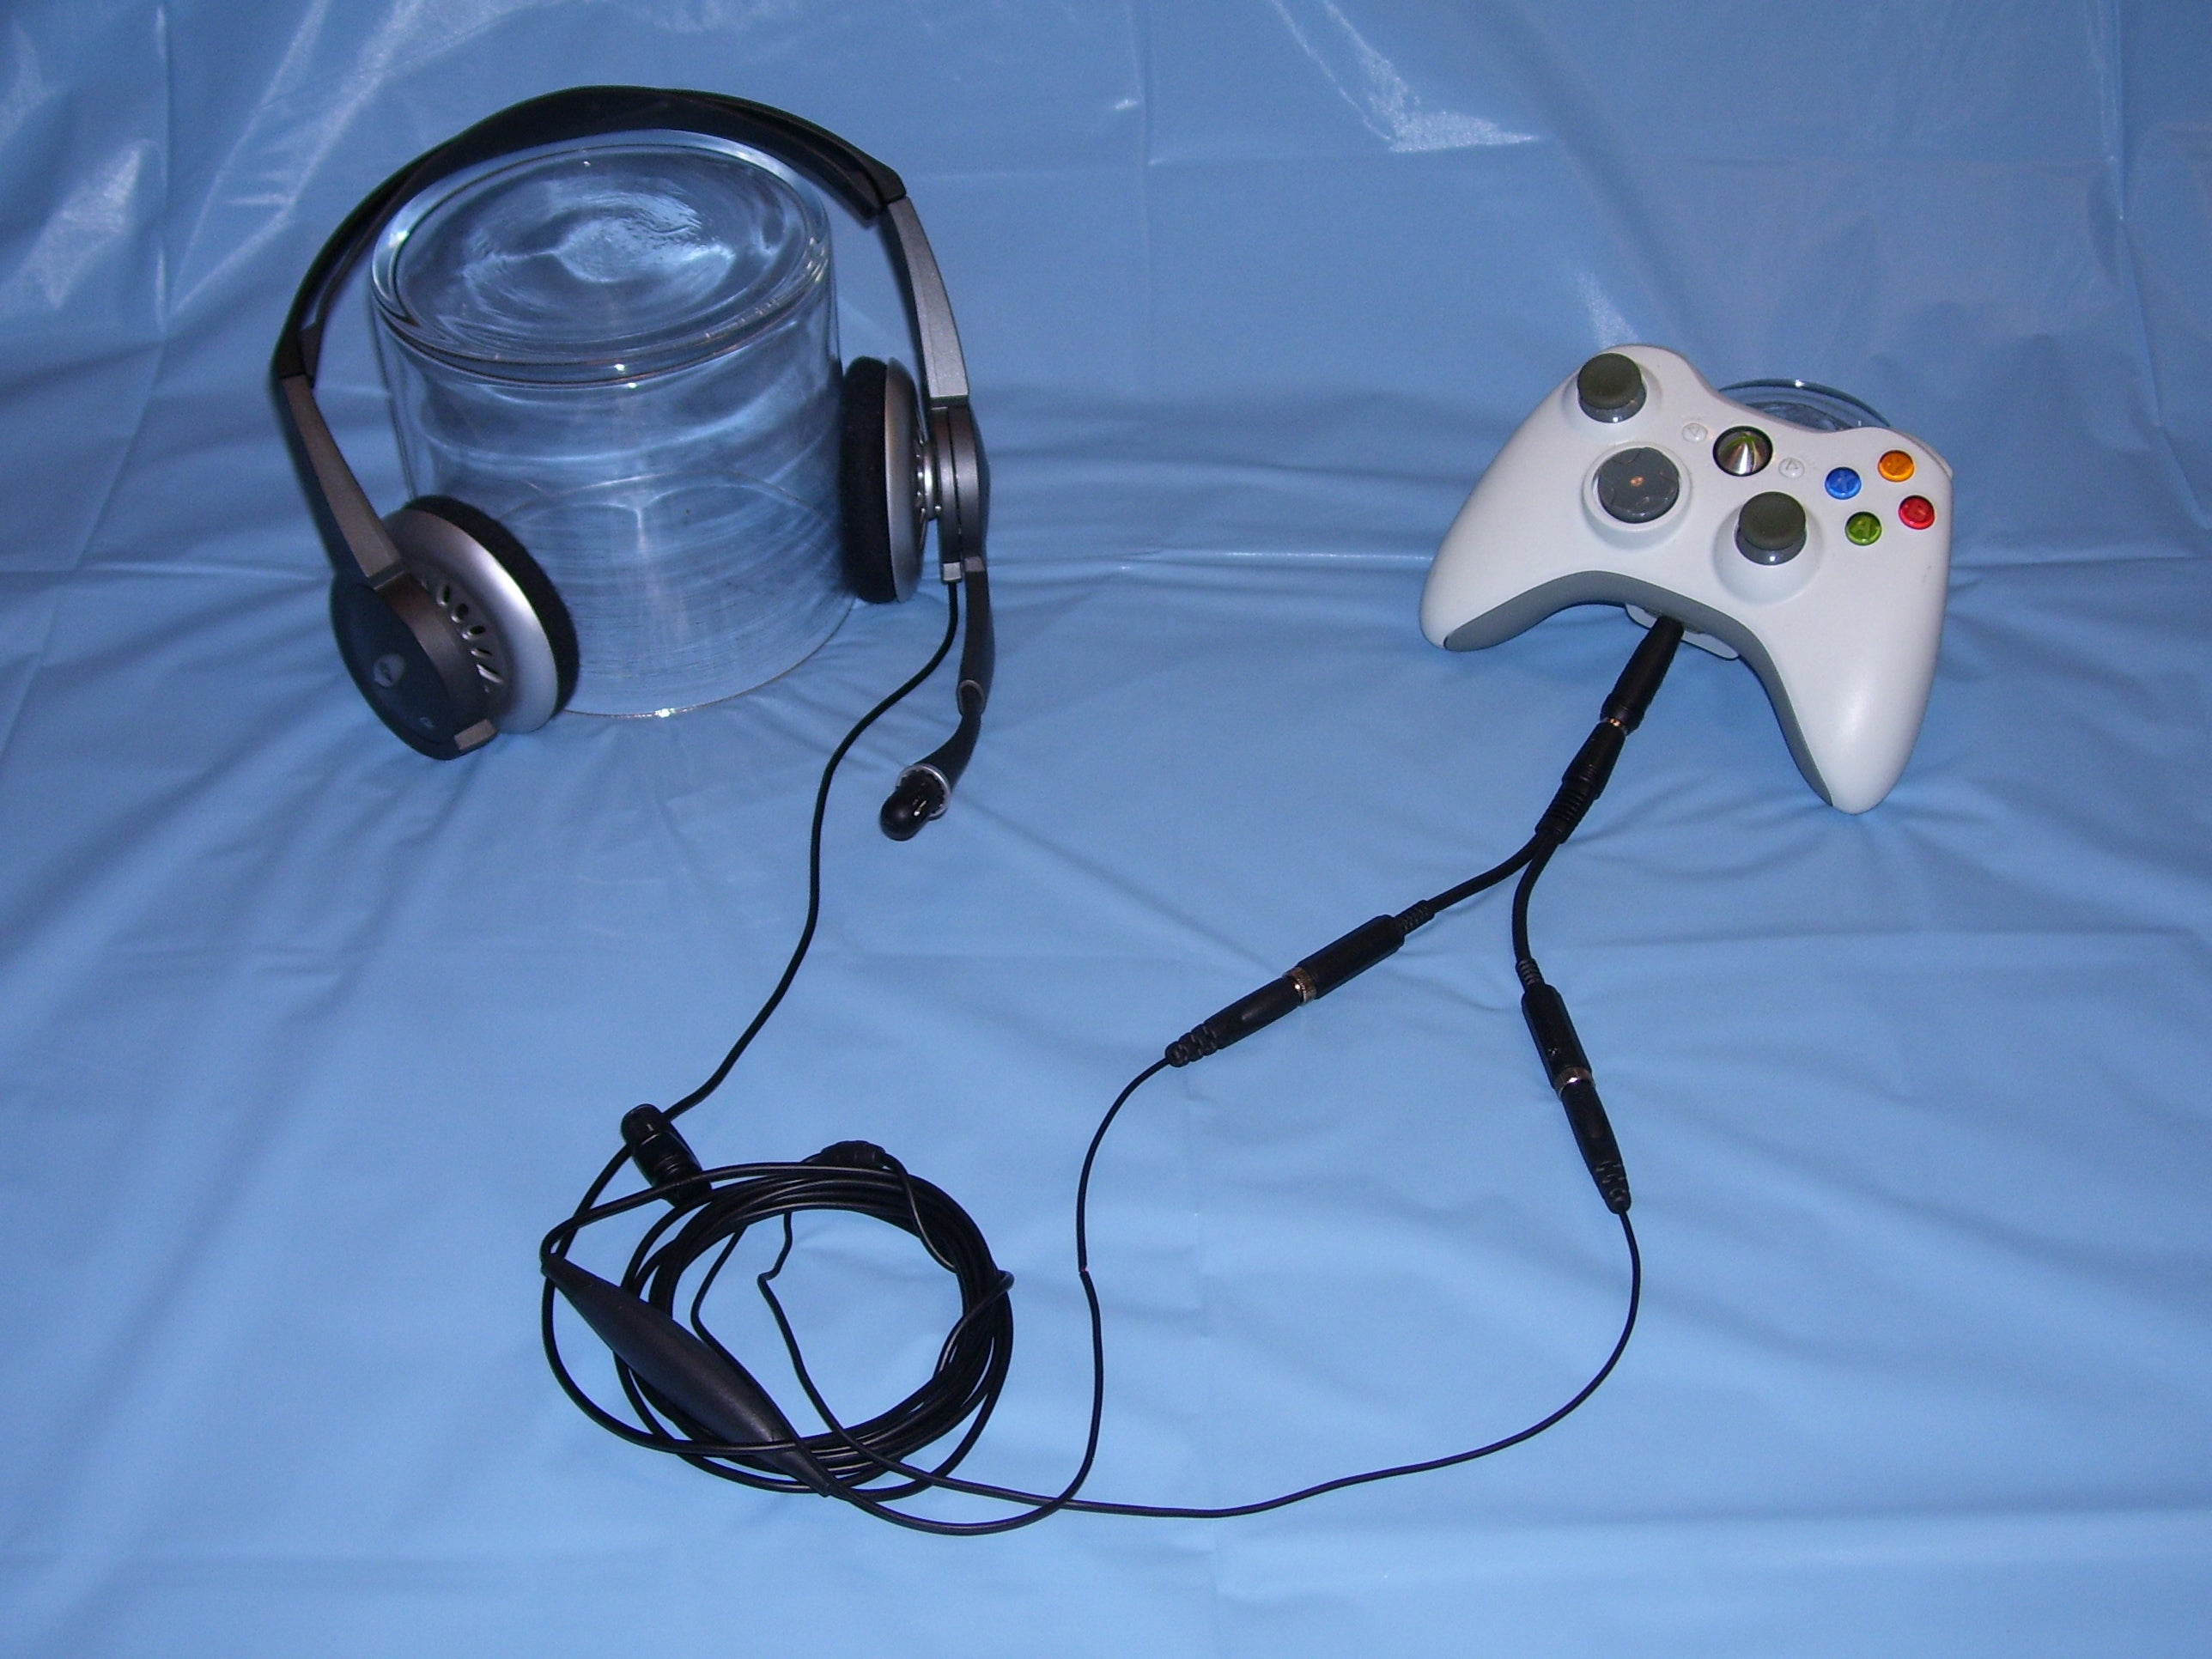 Xbox 360 Headset Wiring Diagram from content.instructables.com